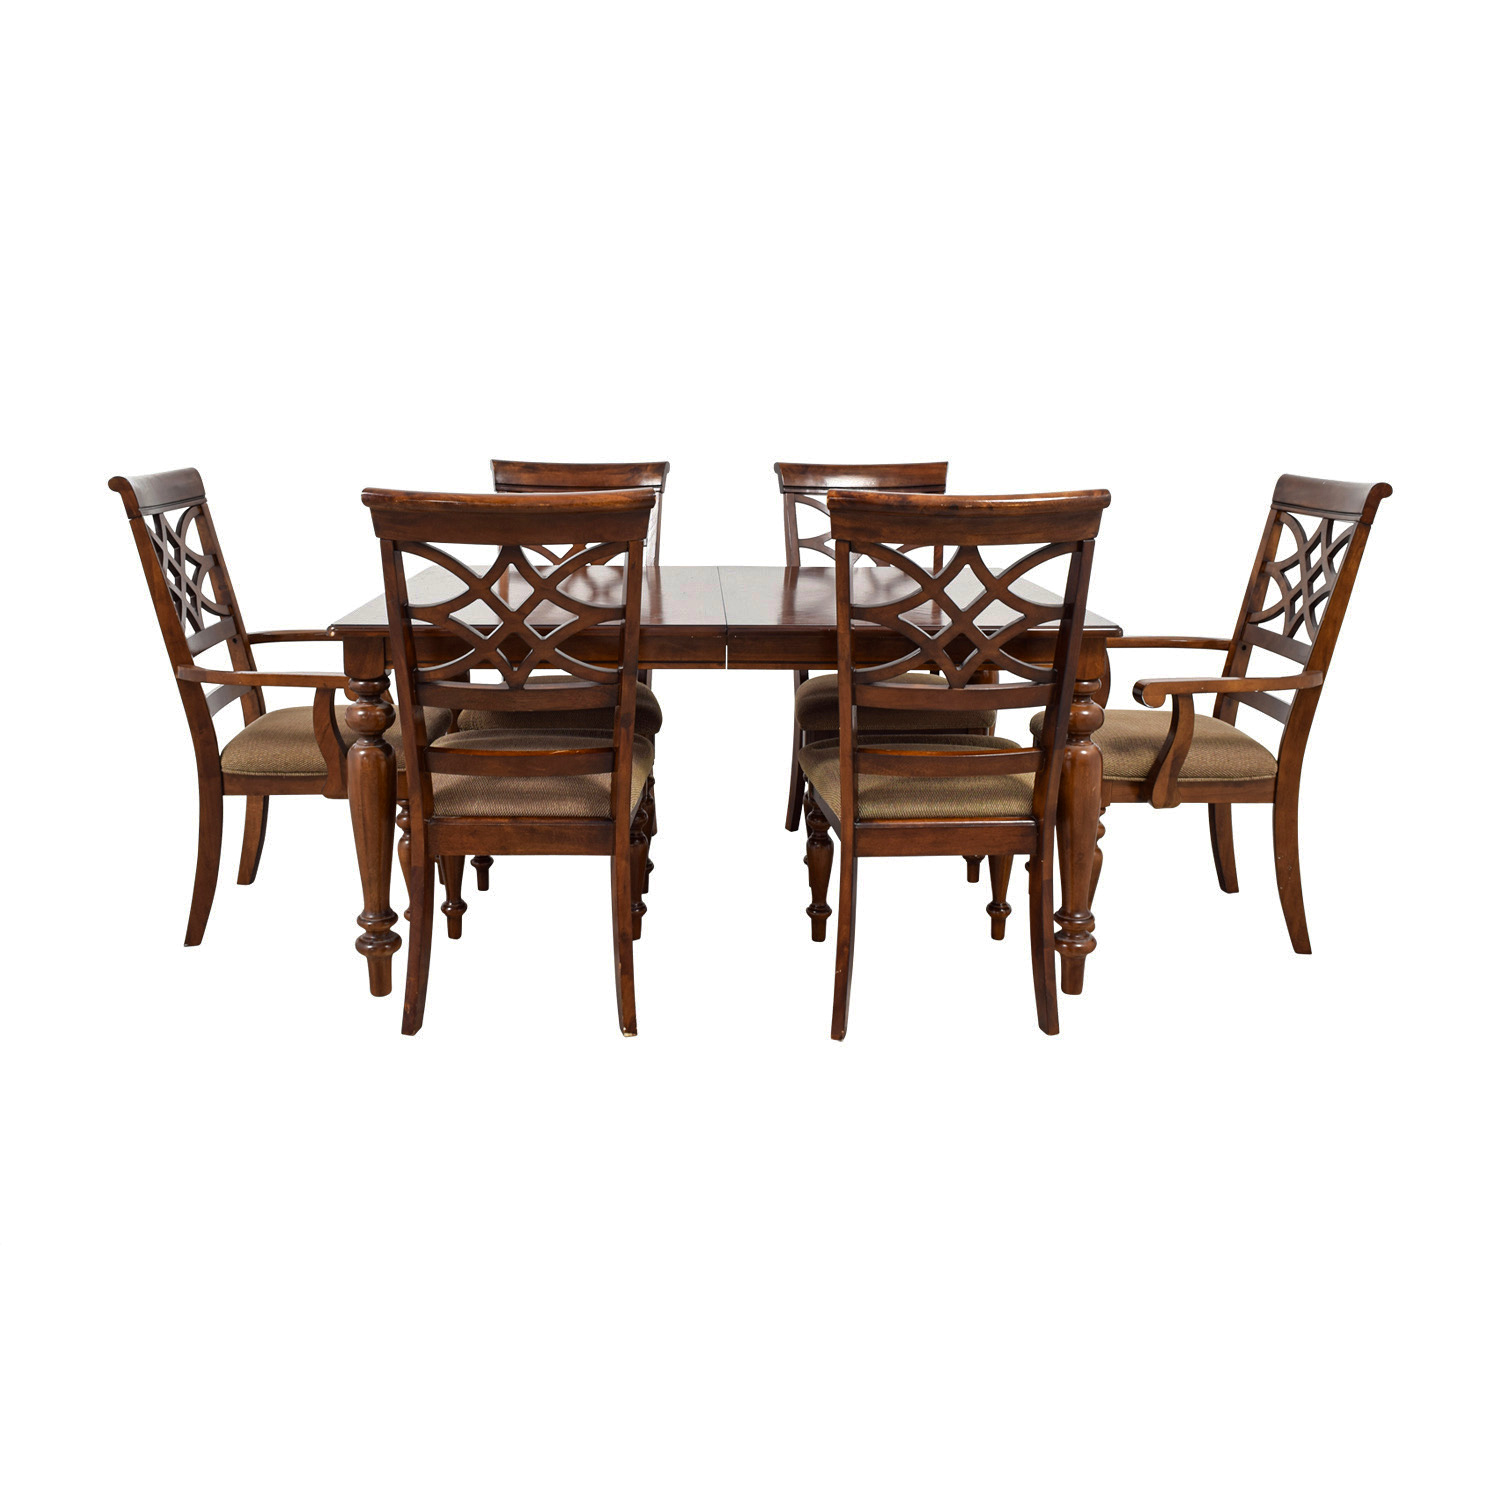 buy Bob's Furniture Wood Dining Set Table with Extention Leaf Bob's Furniture Dining Sets